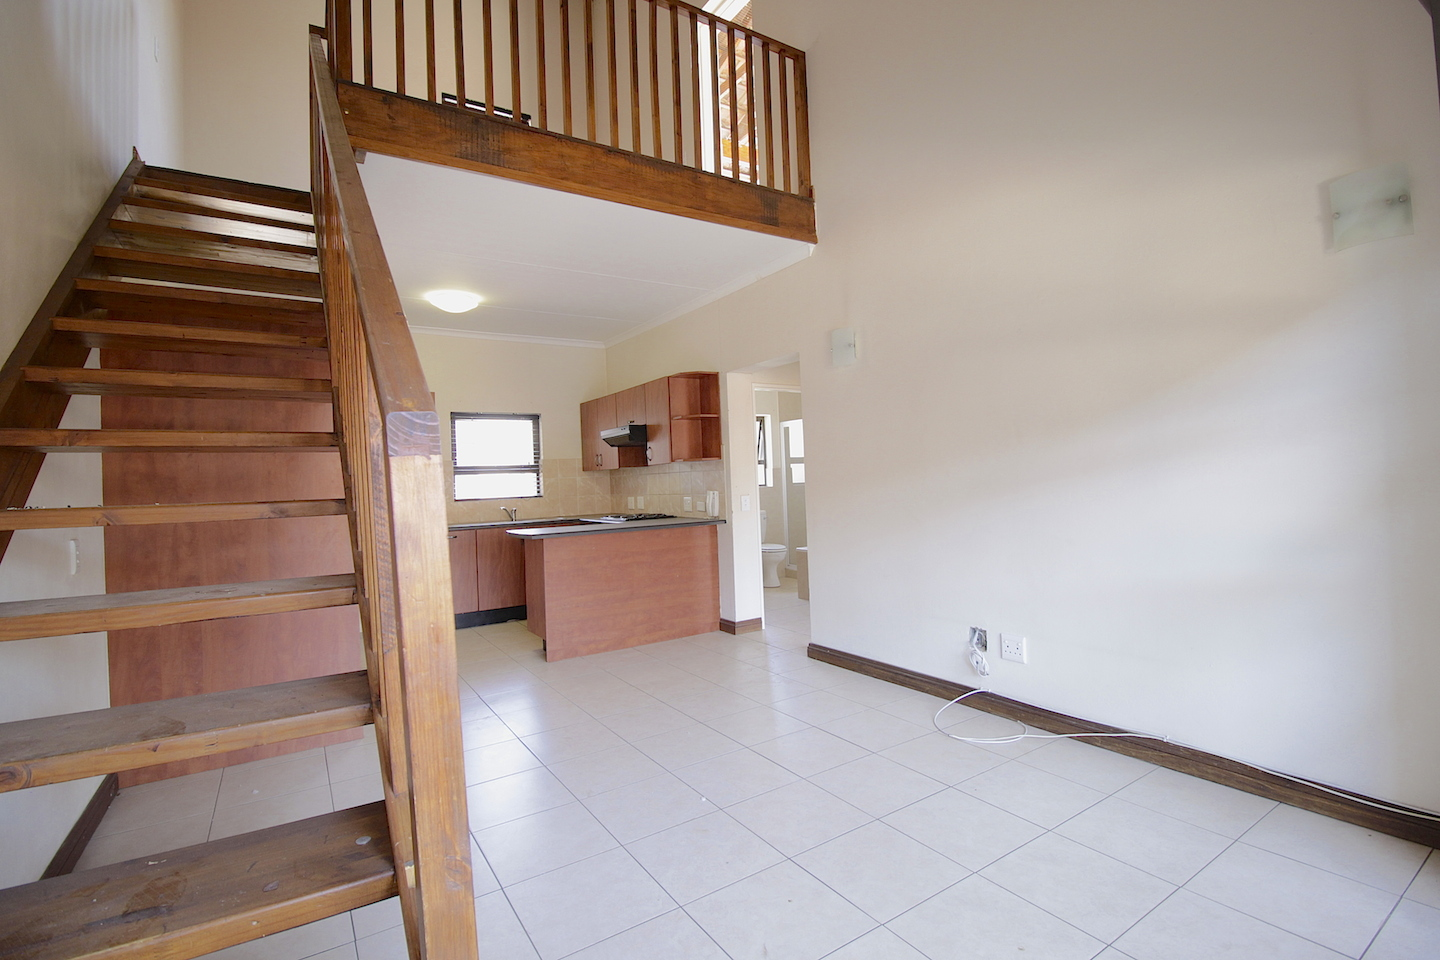 2 BedroomApartment For Sale In Ferndale